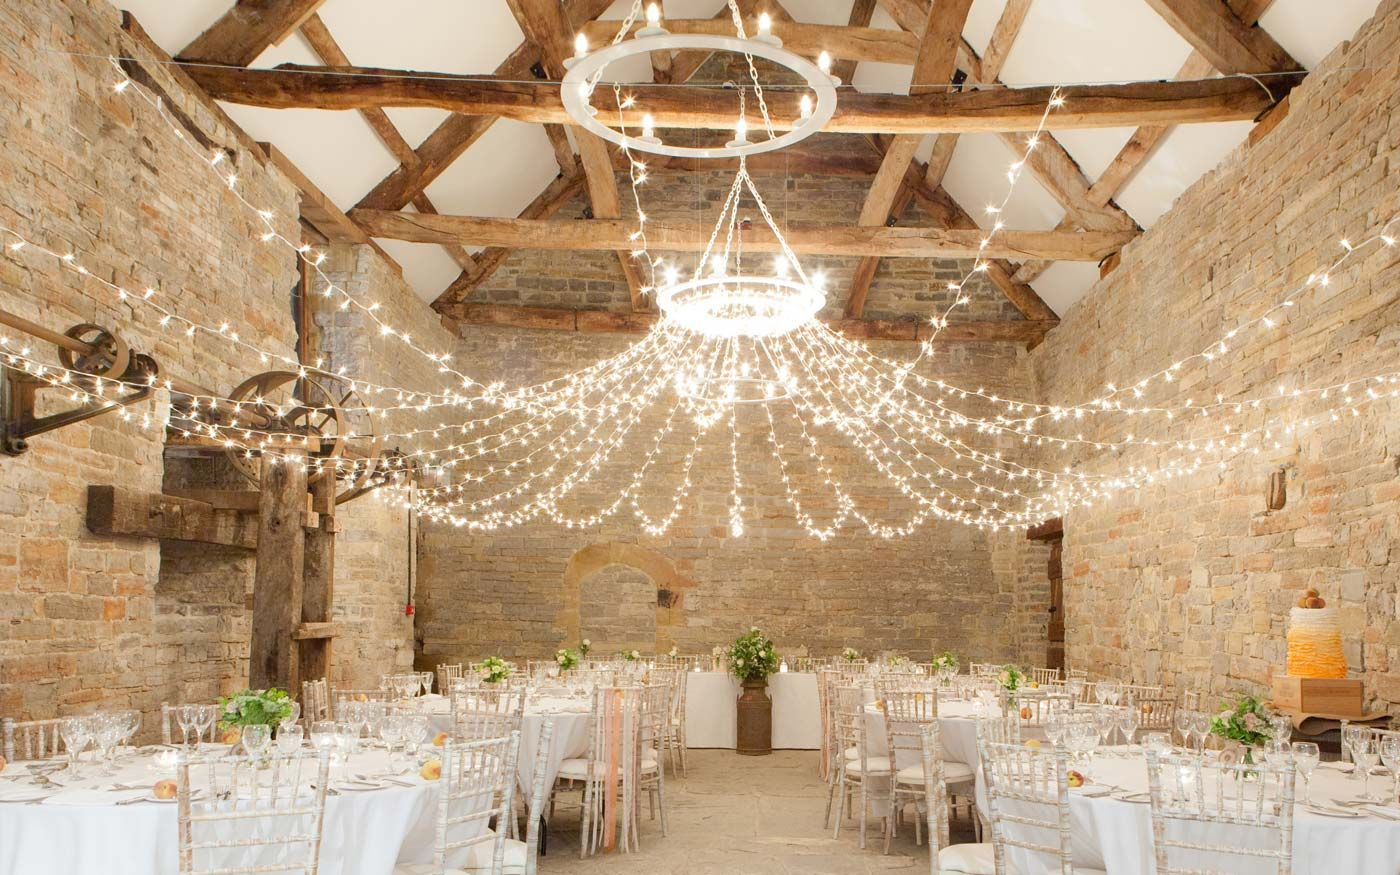 Almonry Barn Find Your Perfect Venue Wedding Venues Barn Wedding Venue Wedding Lights